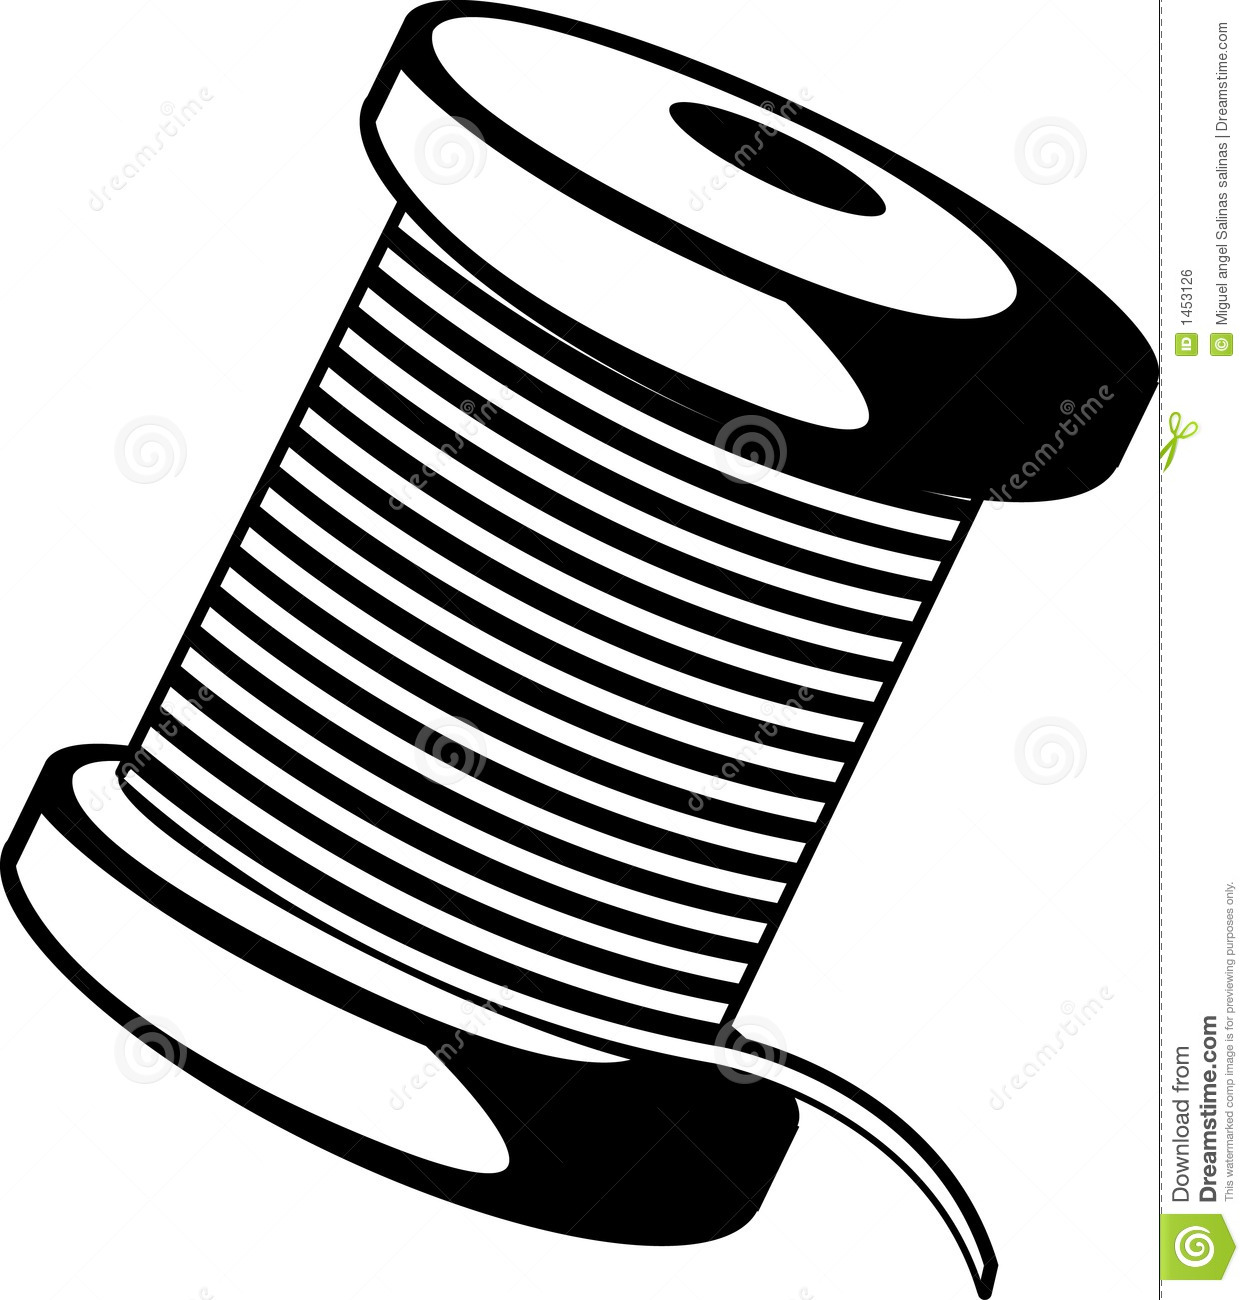 Wire Spool Stock Illustrations – 278 Wire Spool Stock Illustrations ...